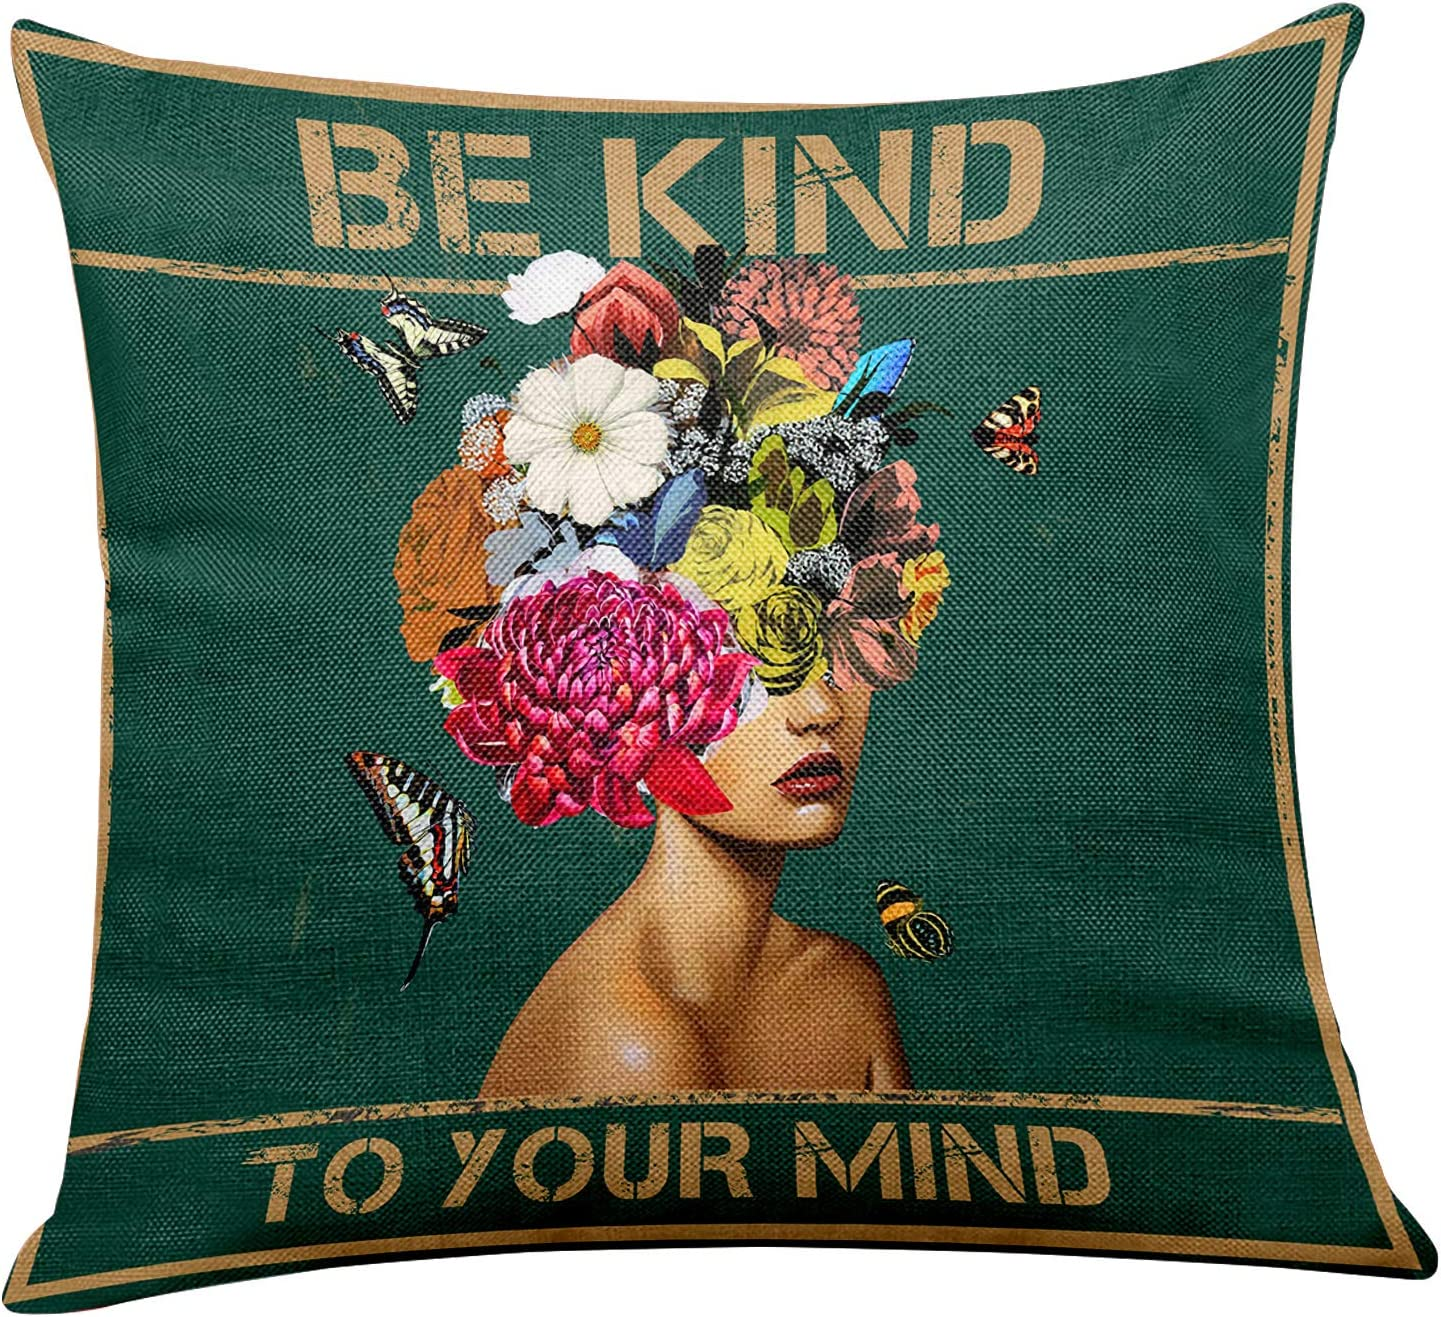 yuzi-n Vintage Be Kind to Your Mind Inspirational Quotes Pillow Covers, Retro Pillow Covers for Office/Home/Living Room Sofa Couch Decor 18 x 18 Inch